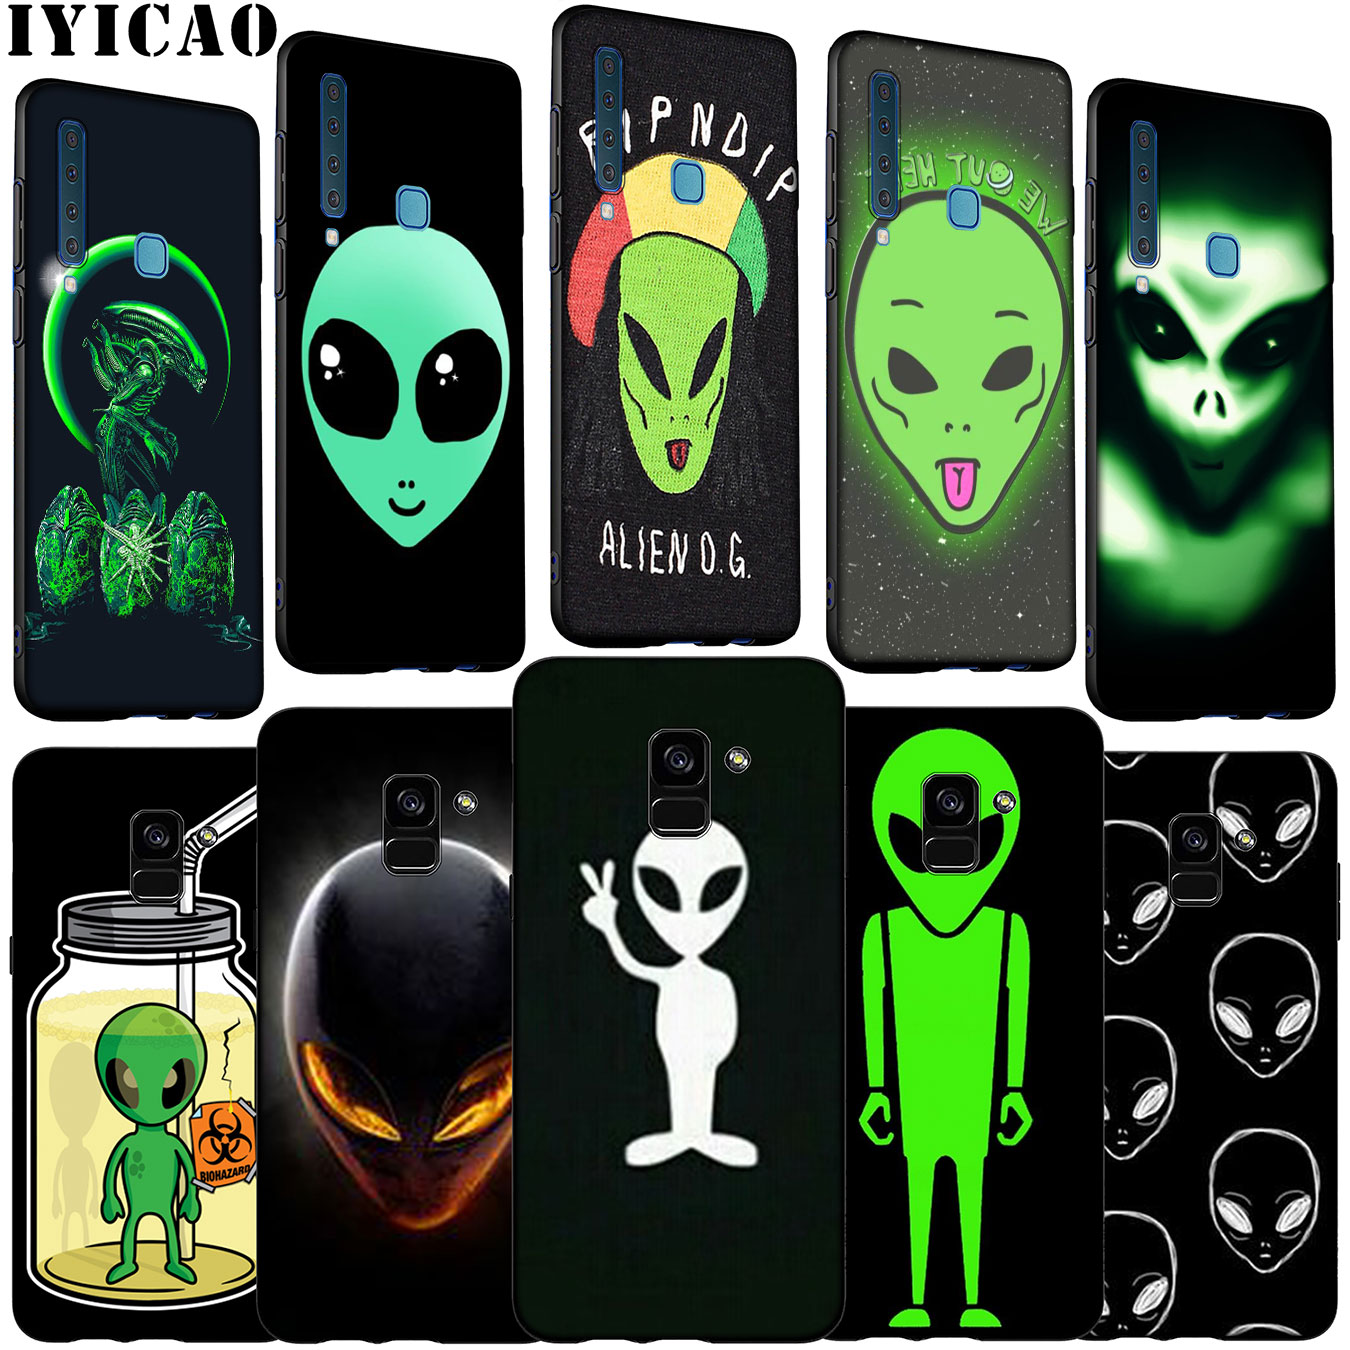 Cool Alien funny Cute Soft <font><b>Silicone</b></font> Phone <font><b>Case</b></font> for <font><b>Samsung</b></font> Galaxy A6 A7 A8 A9 2018 A3 <font><b>A5</b></font> <font><b>2016</b></font> 2017 Note 9 8 10 Plus image